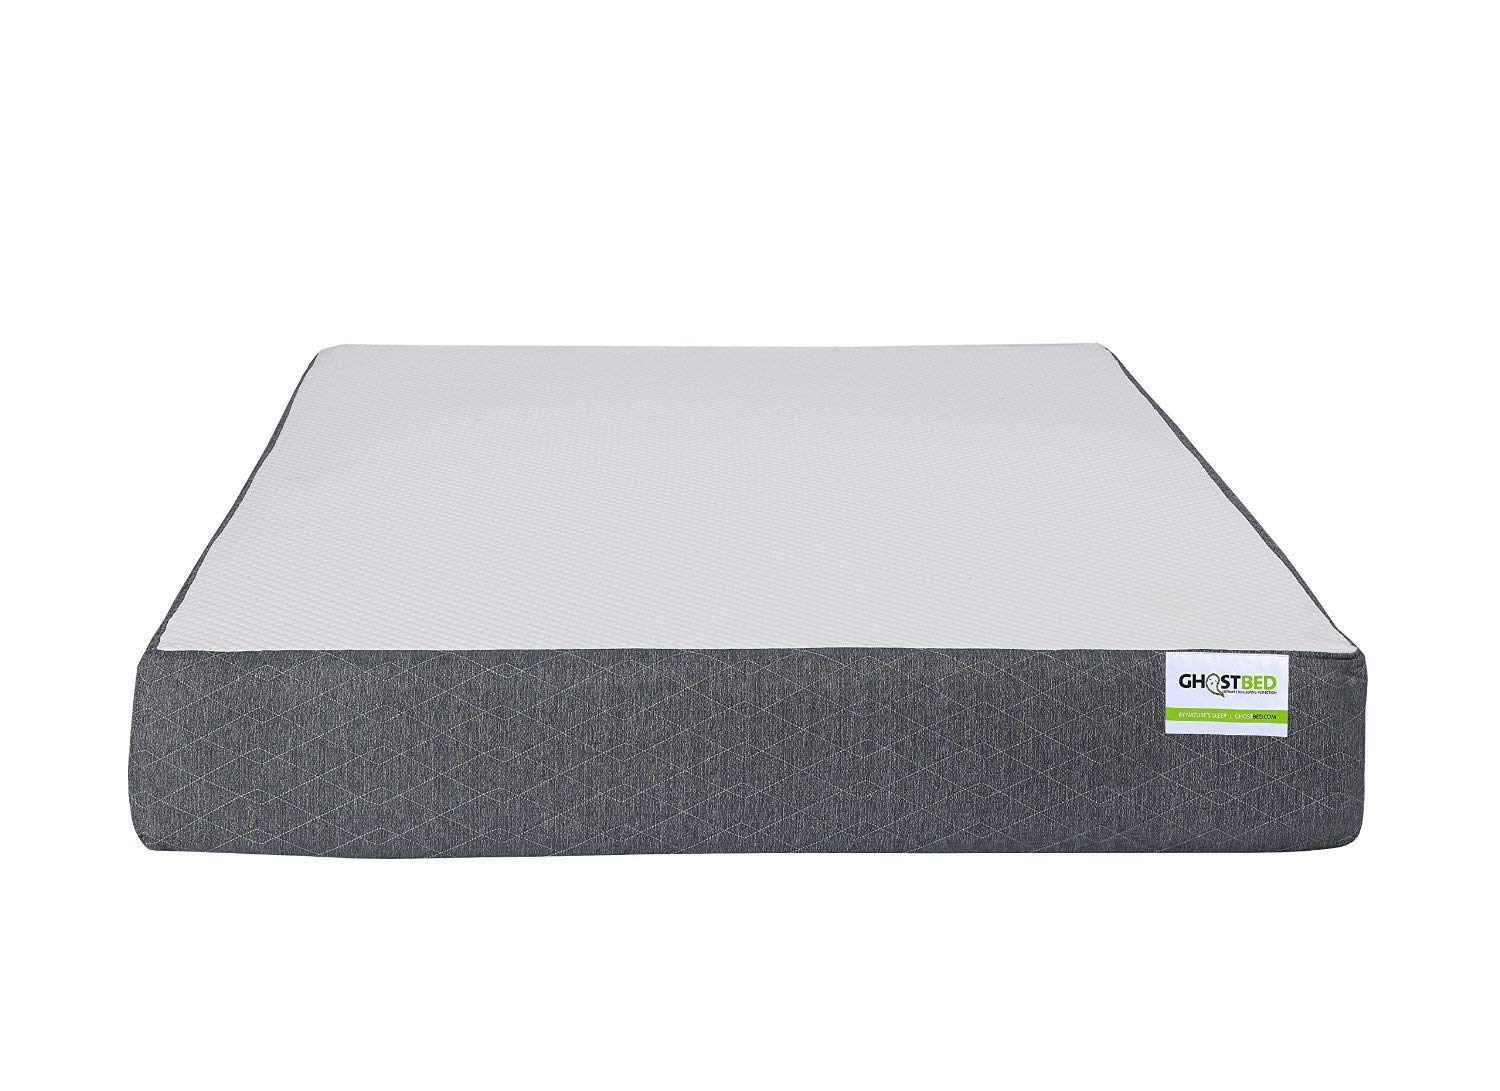 GhostBed Cooling Premium Gel Memory Foam Rolled Mattress, UK King, 27cm High, Made in the UK